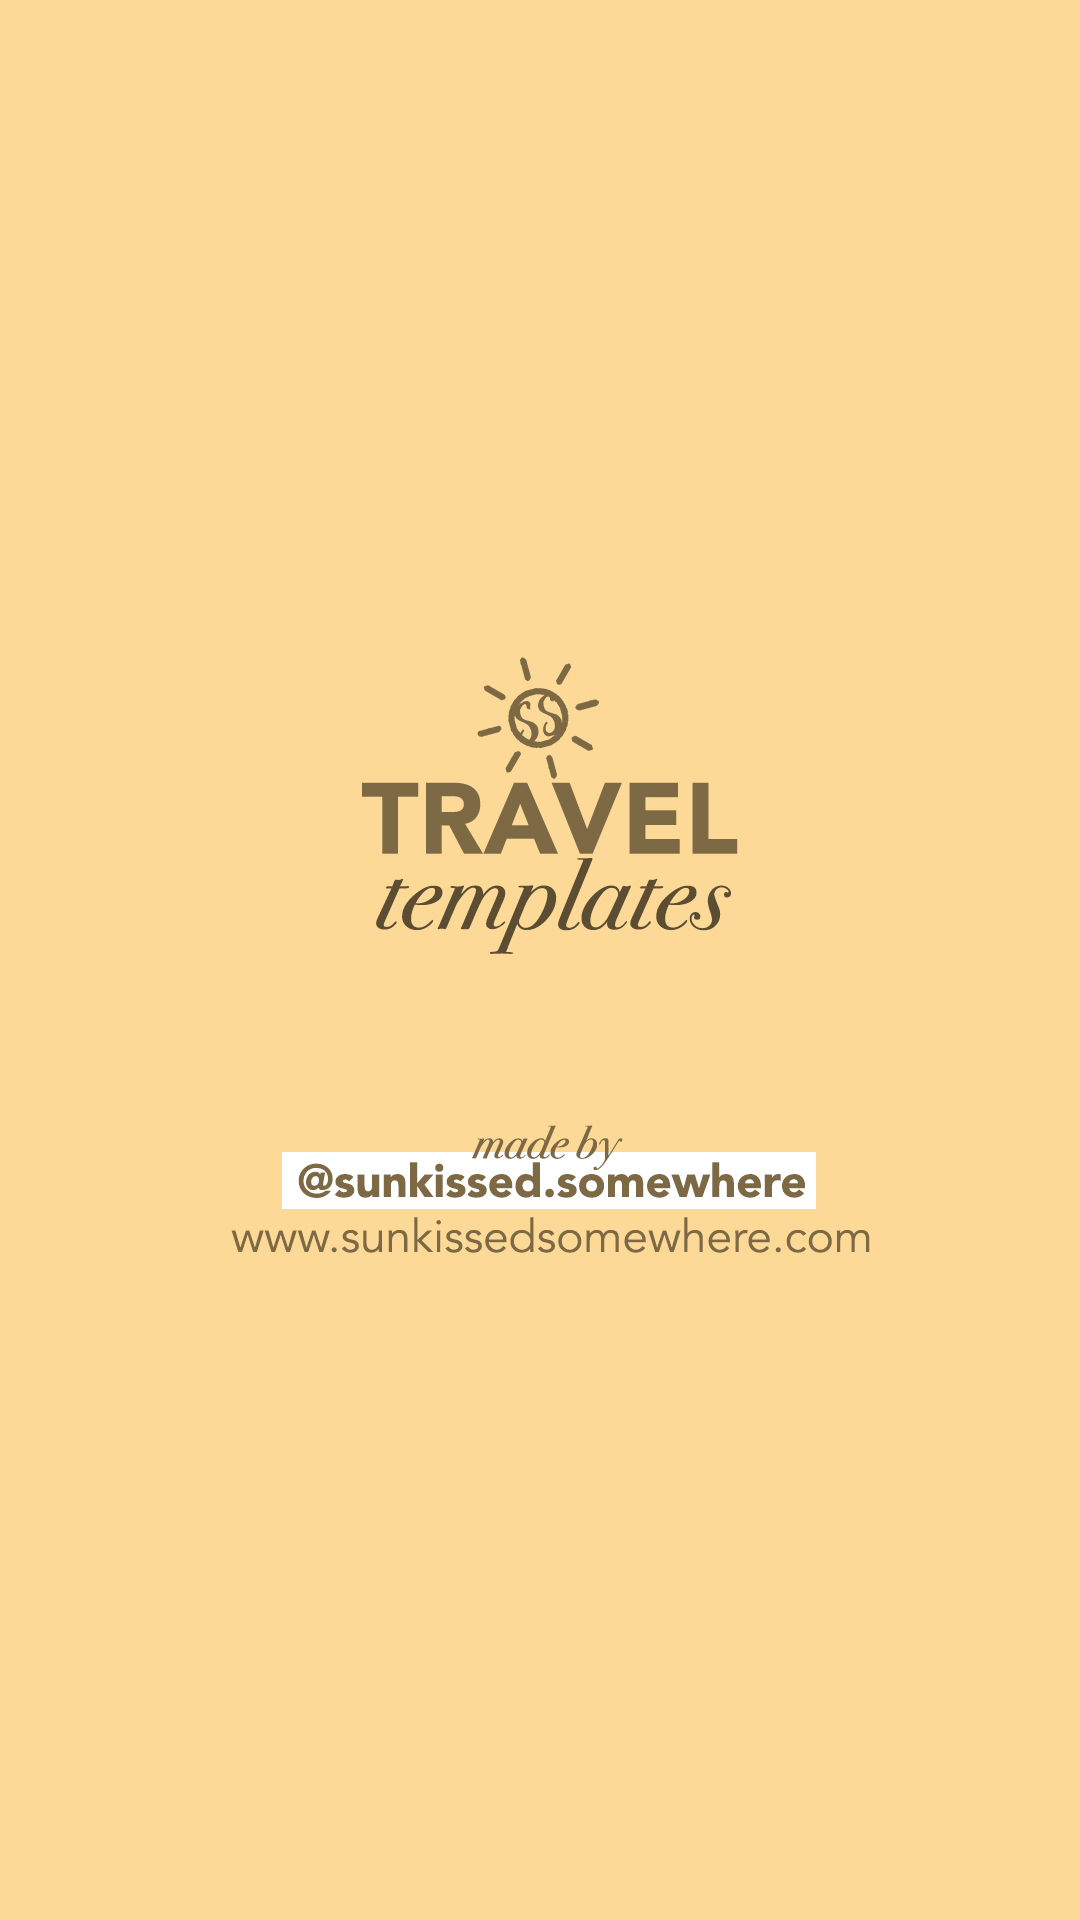 FREE Travel-inspired Instagram Story Template